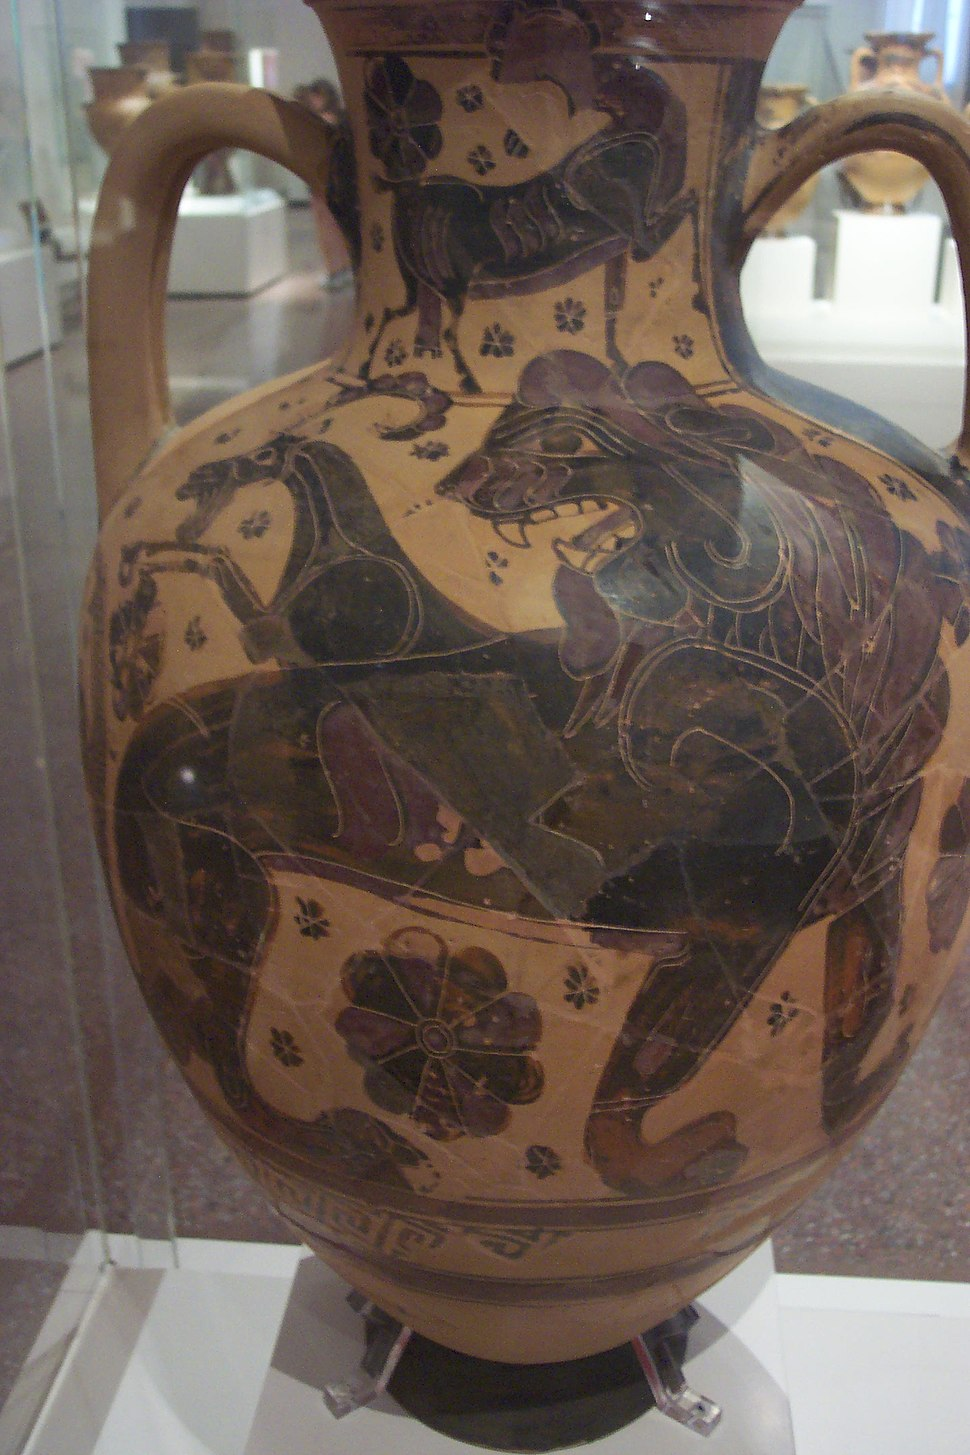 Chimera on vase at Athens' Archaeological Museum